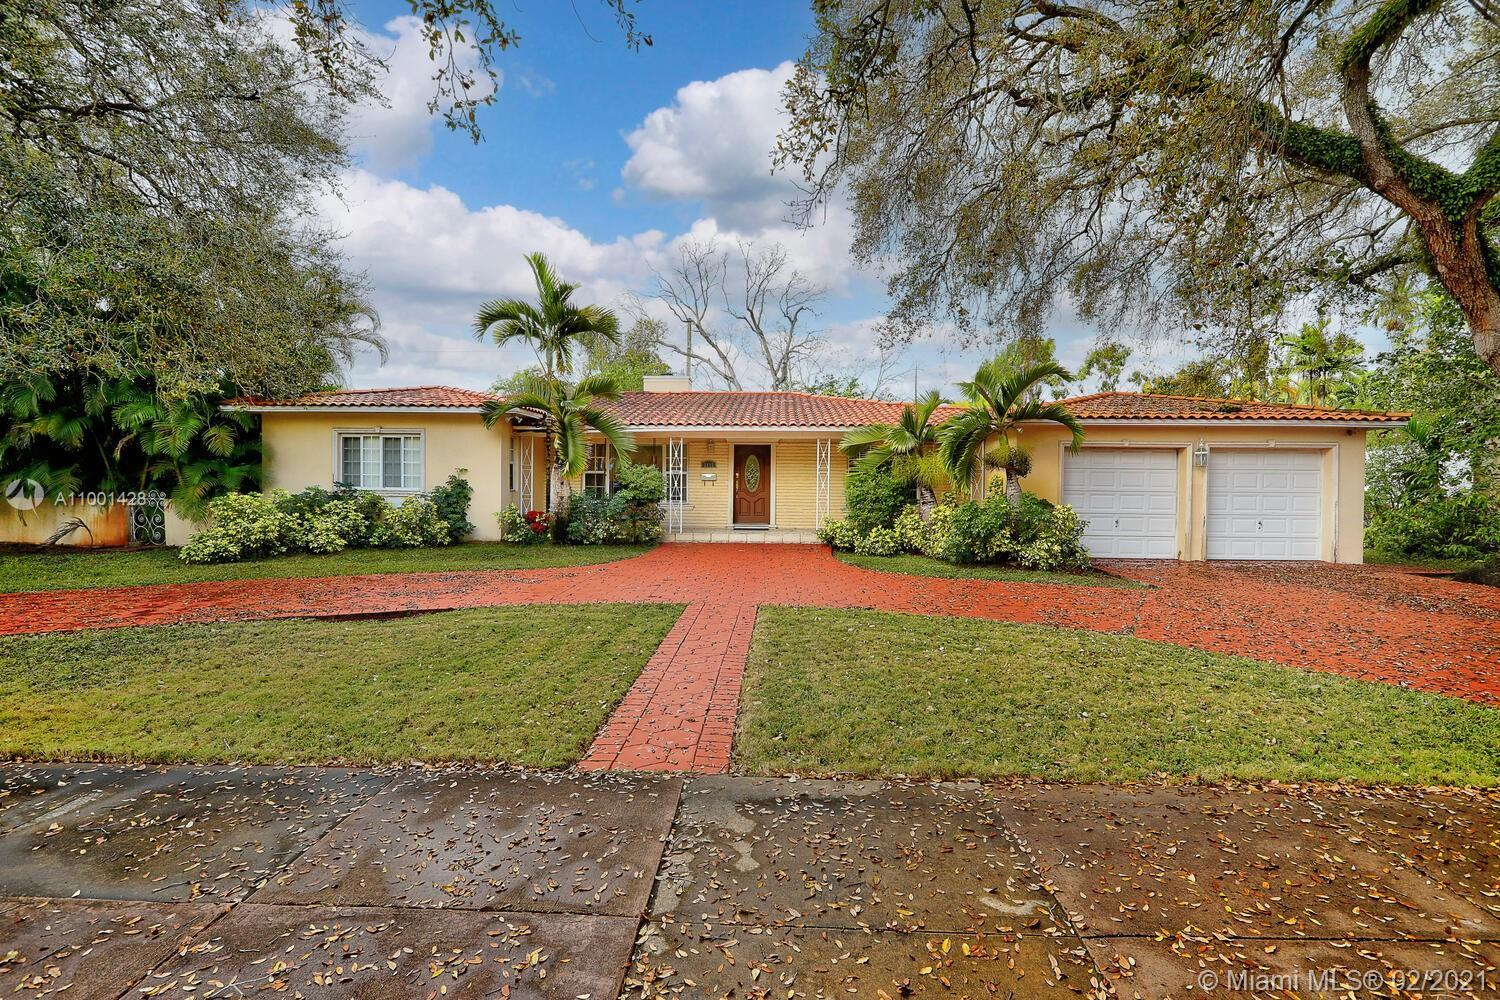 Lovely home on tree-lined Country Club Prado, a coveted Gables cul-de-sac. Located just minutes from